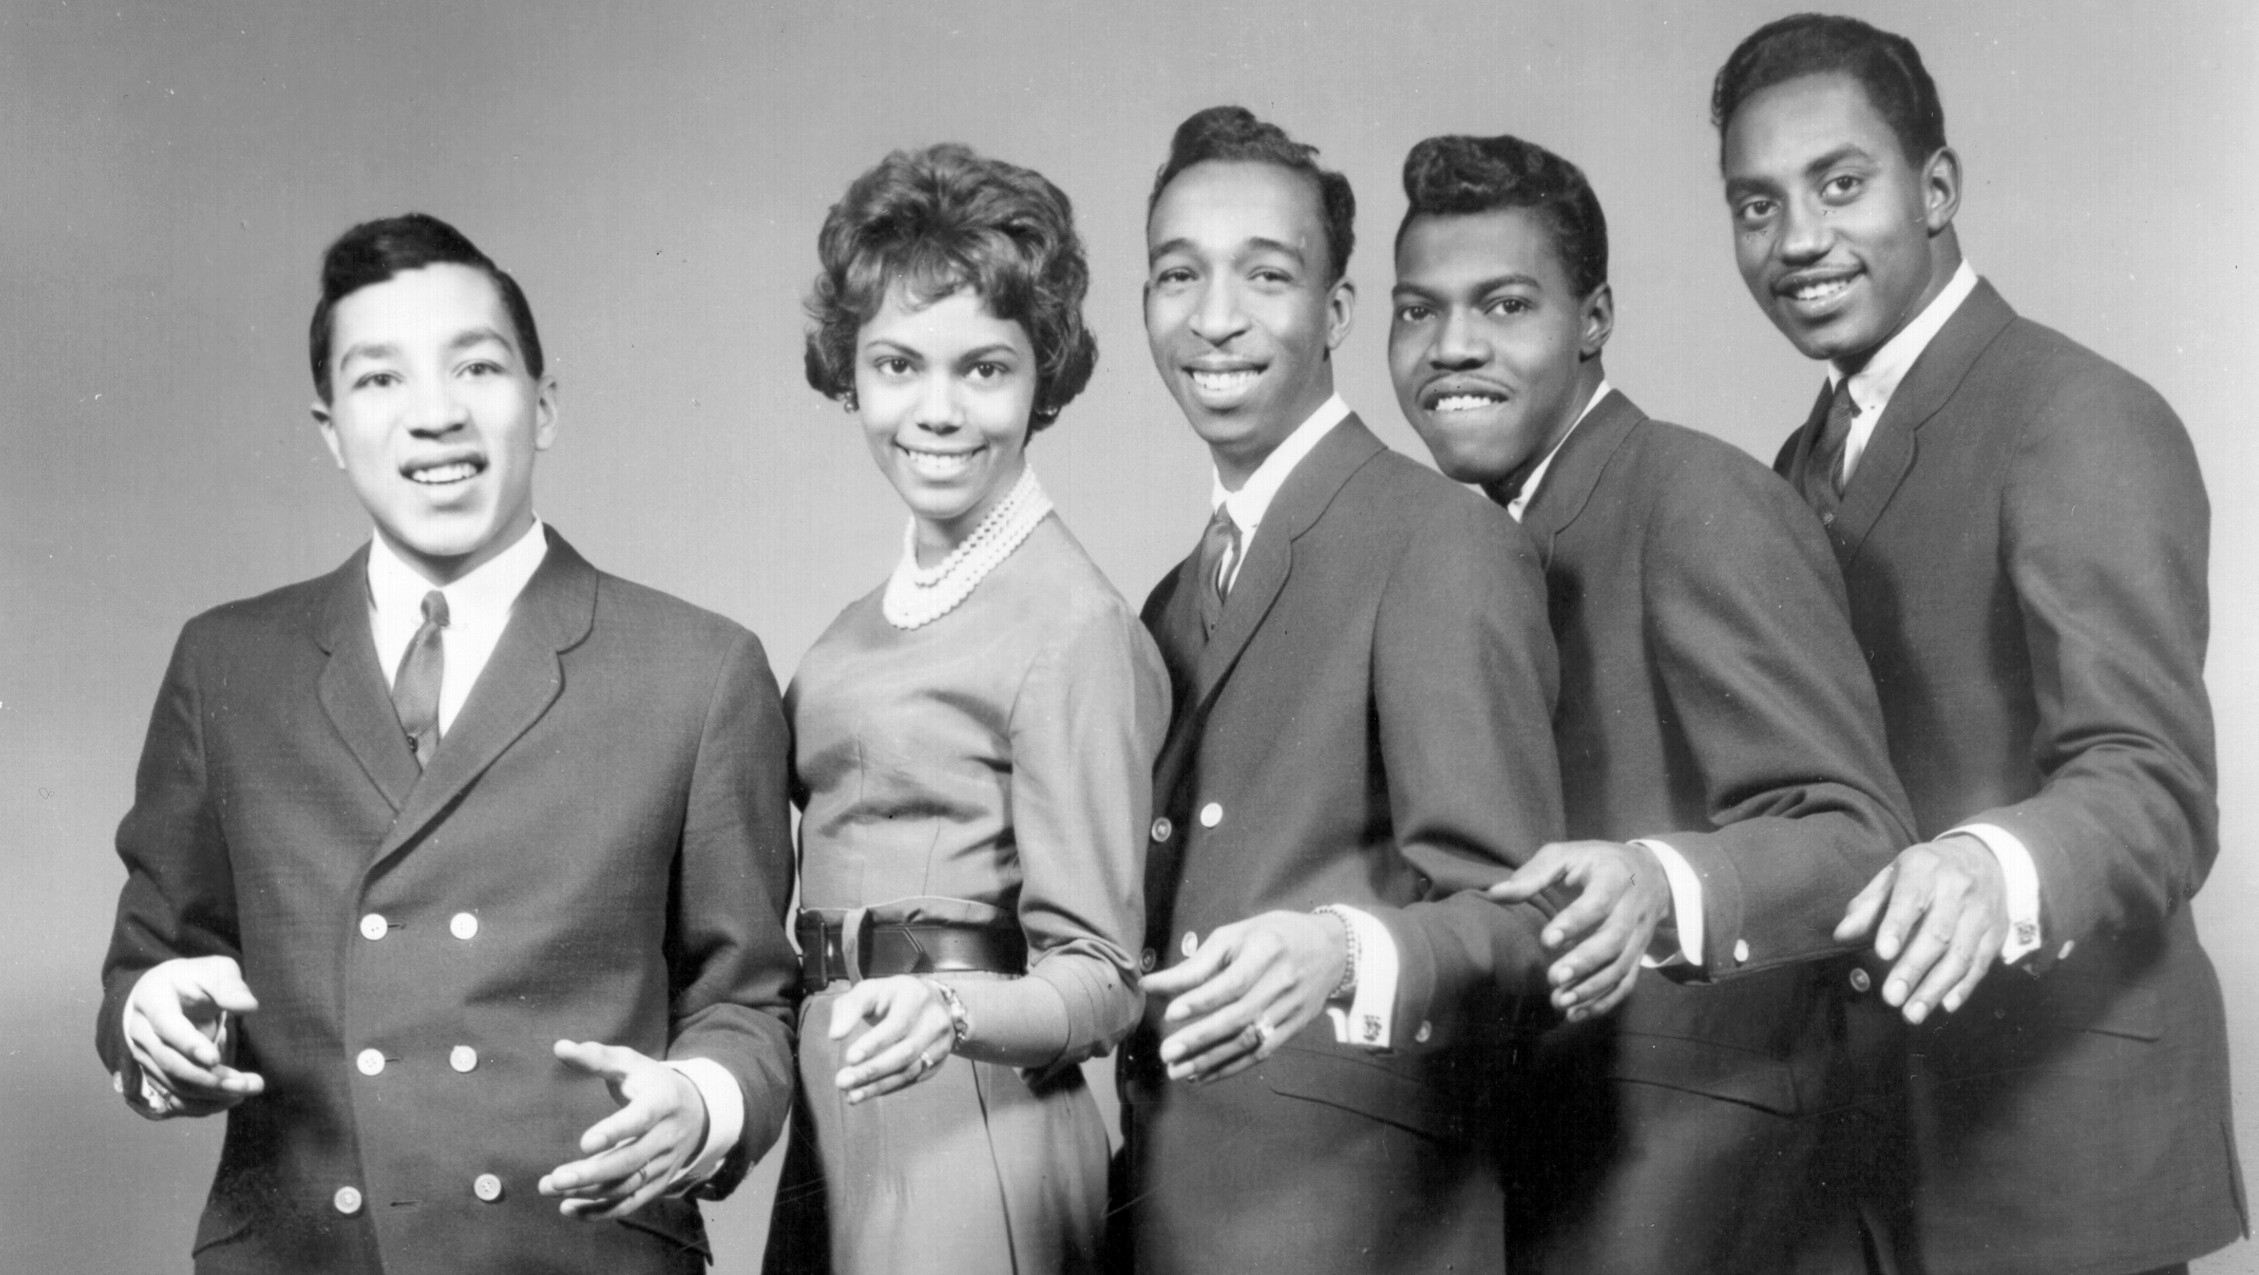 UNSPECIFIED - CIRCA 1970:  Photo of Smokey Robinson & The Miracles  Photo by Michael Ochs Archives/Getty Images